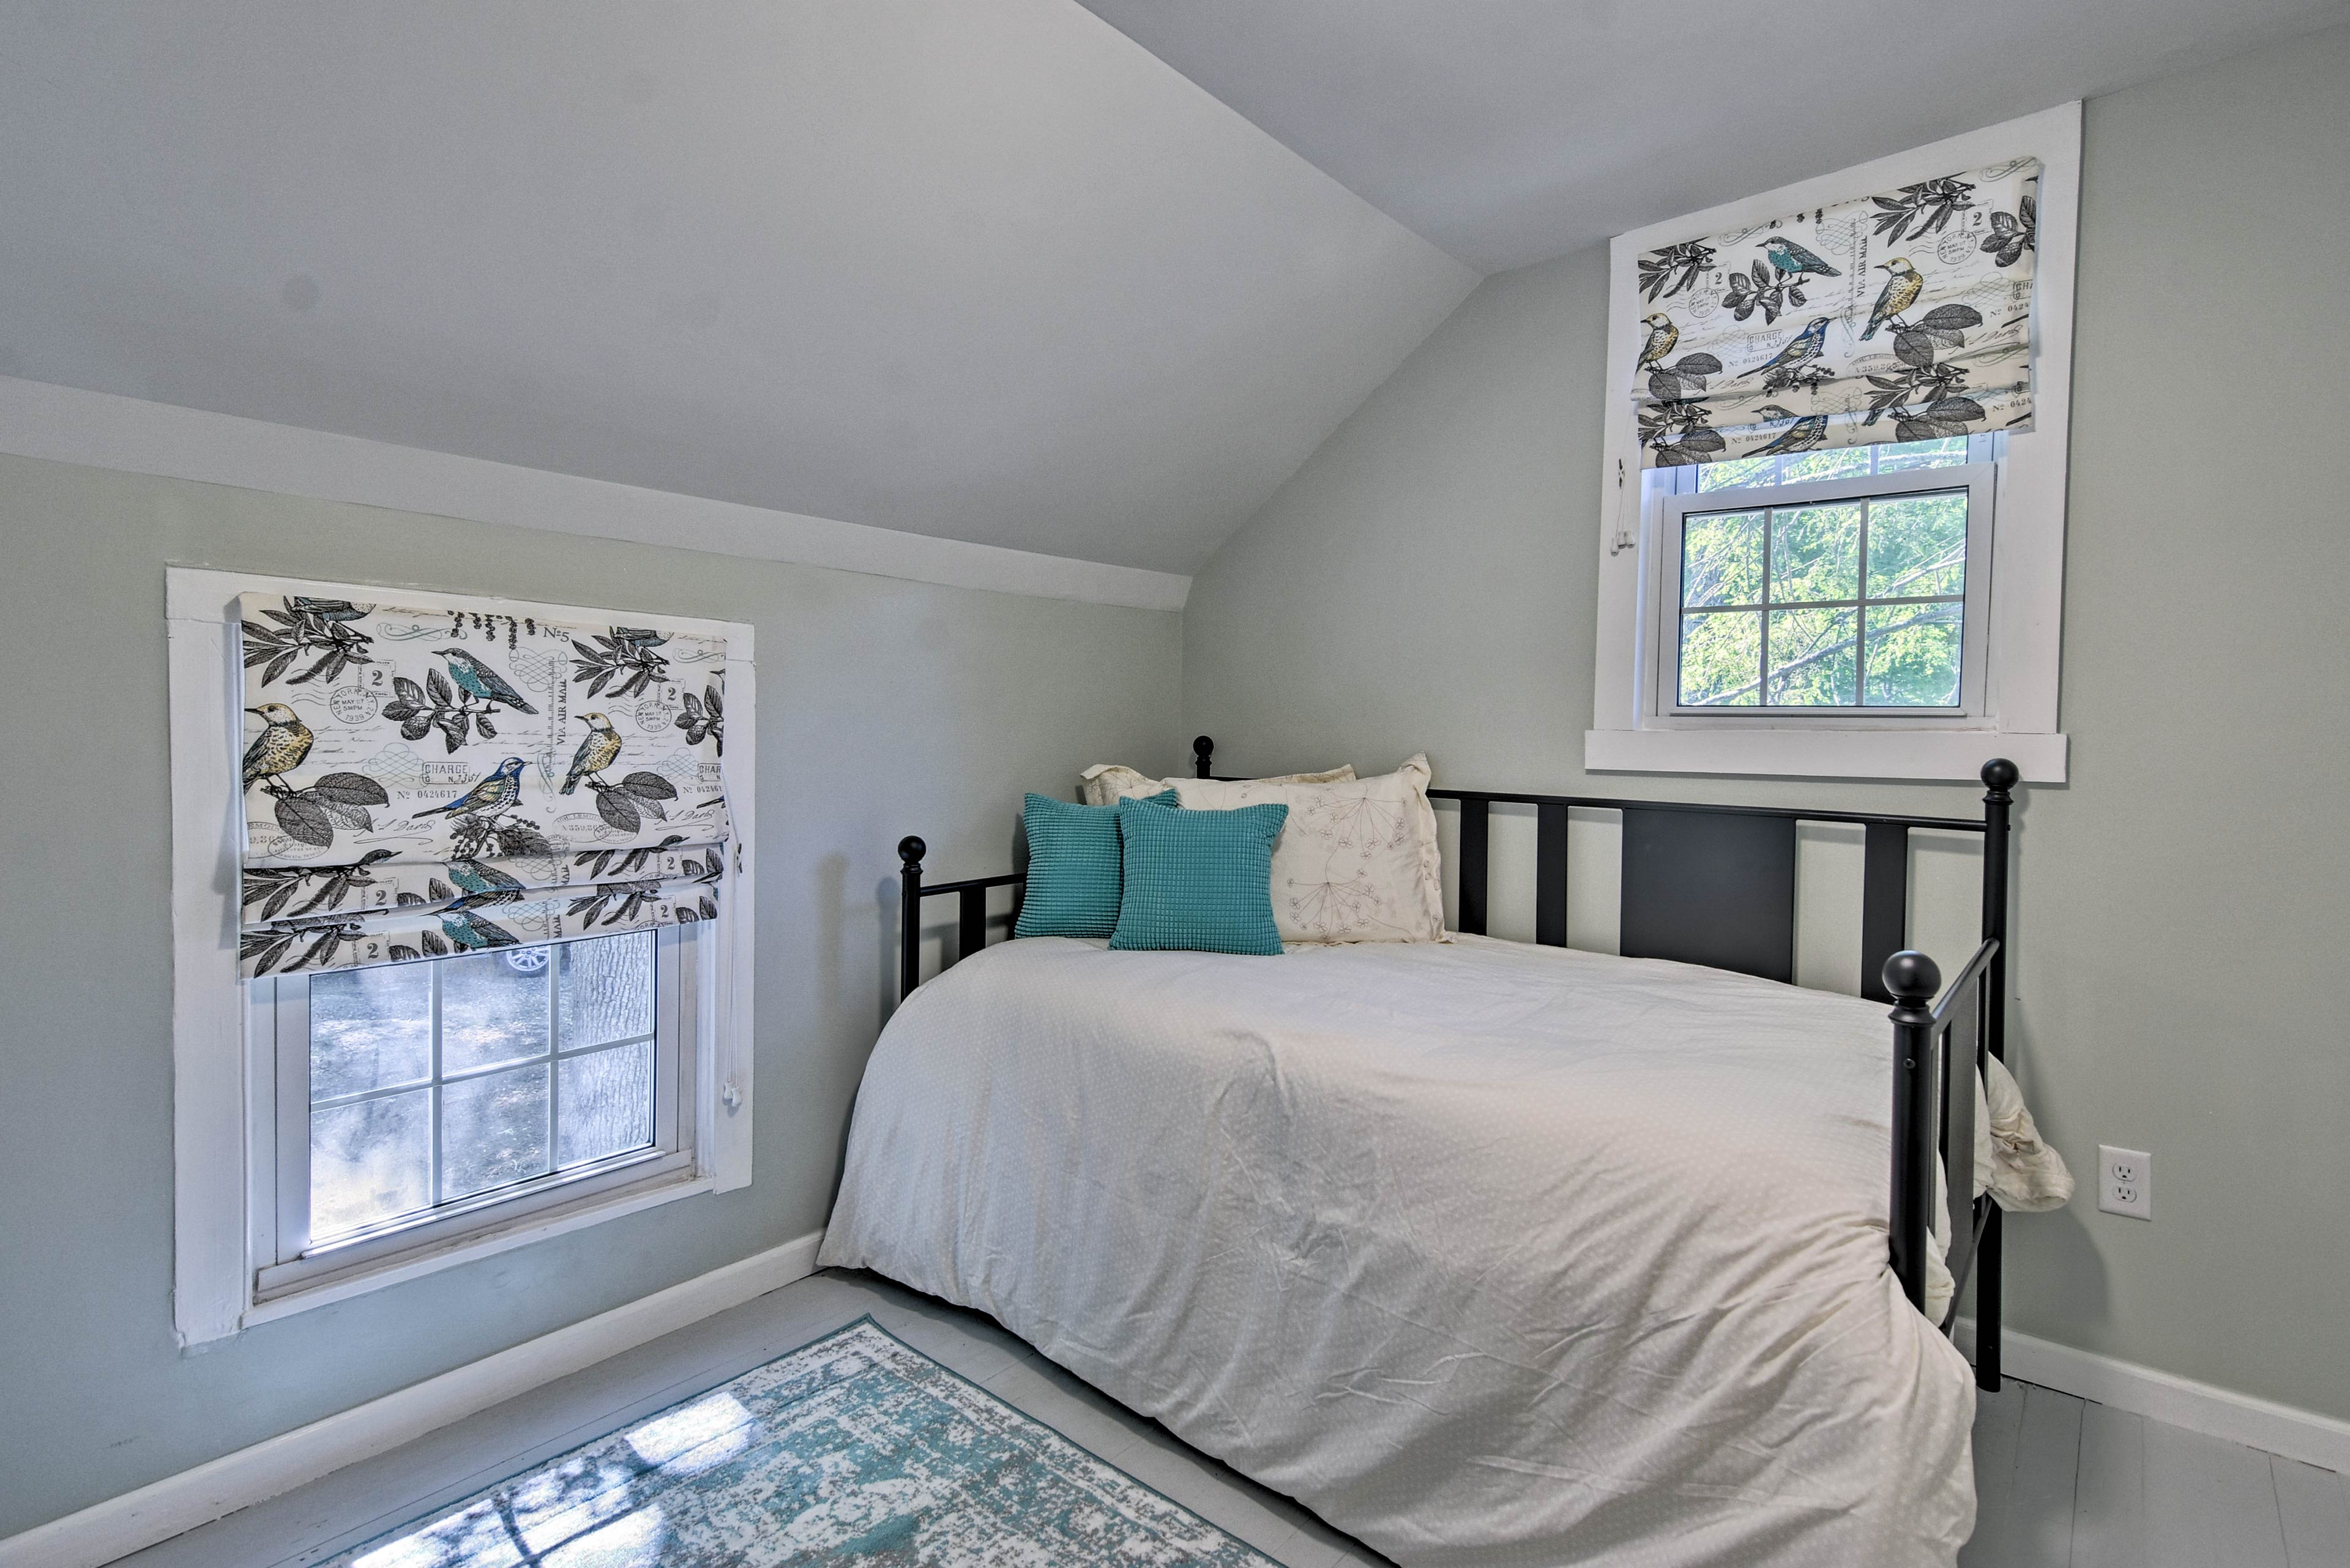 Up to 2 can sleep in this room with a twin bed with twin trundle.